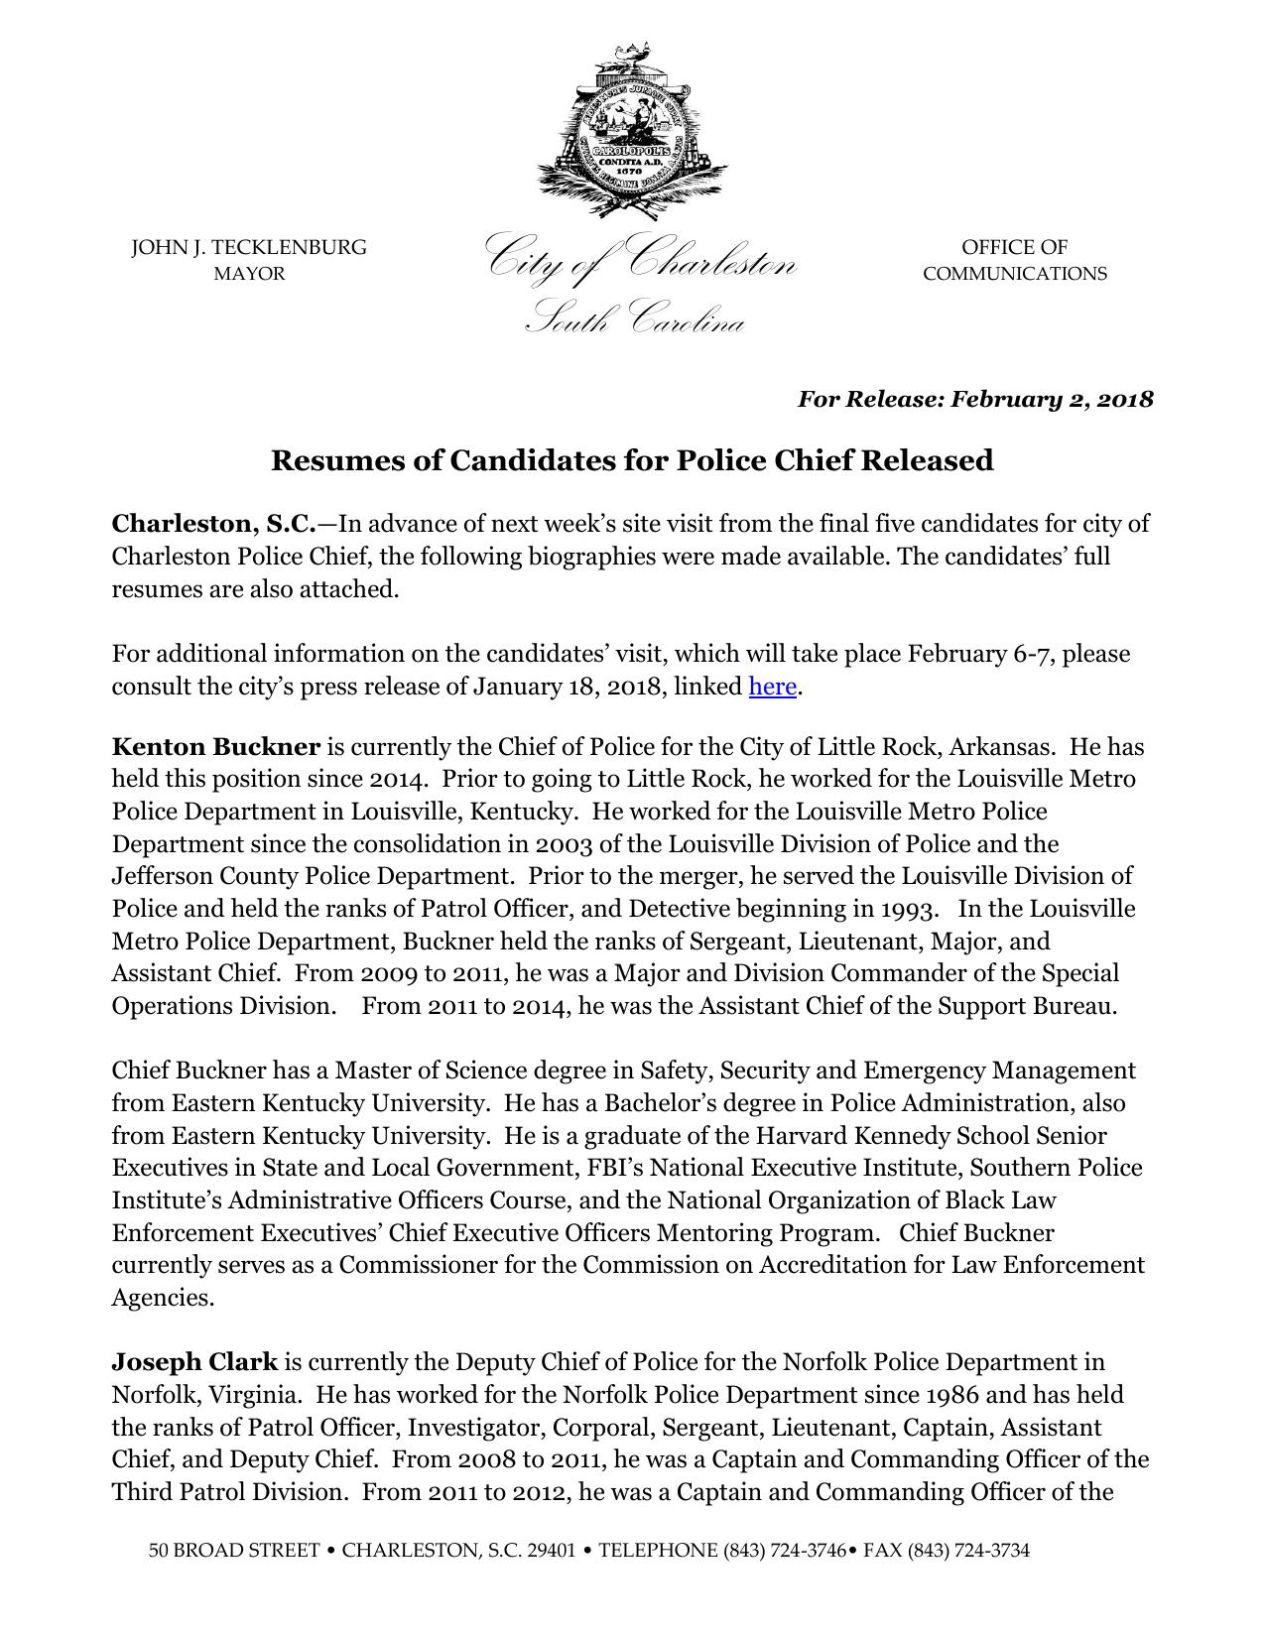 Download PDF Bios Of Five Finalists For Charleston Police Chief  Chief Of Police Resume